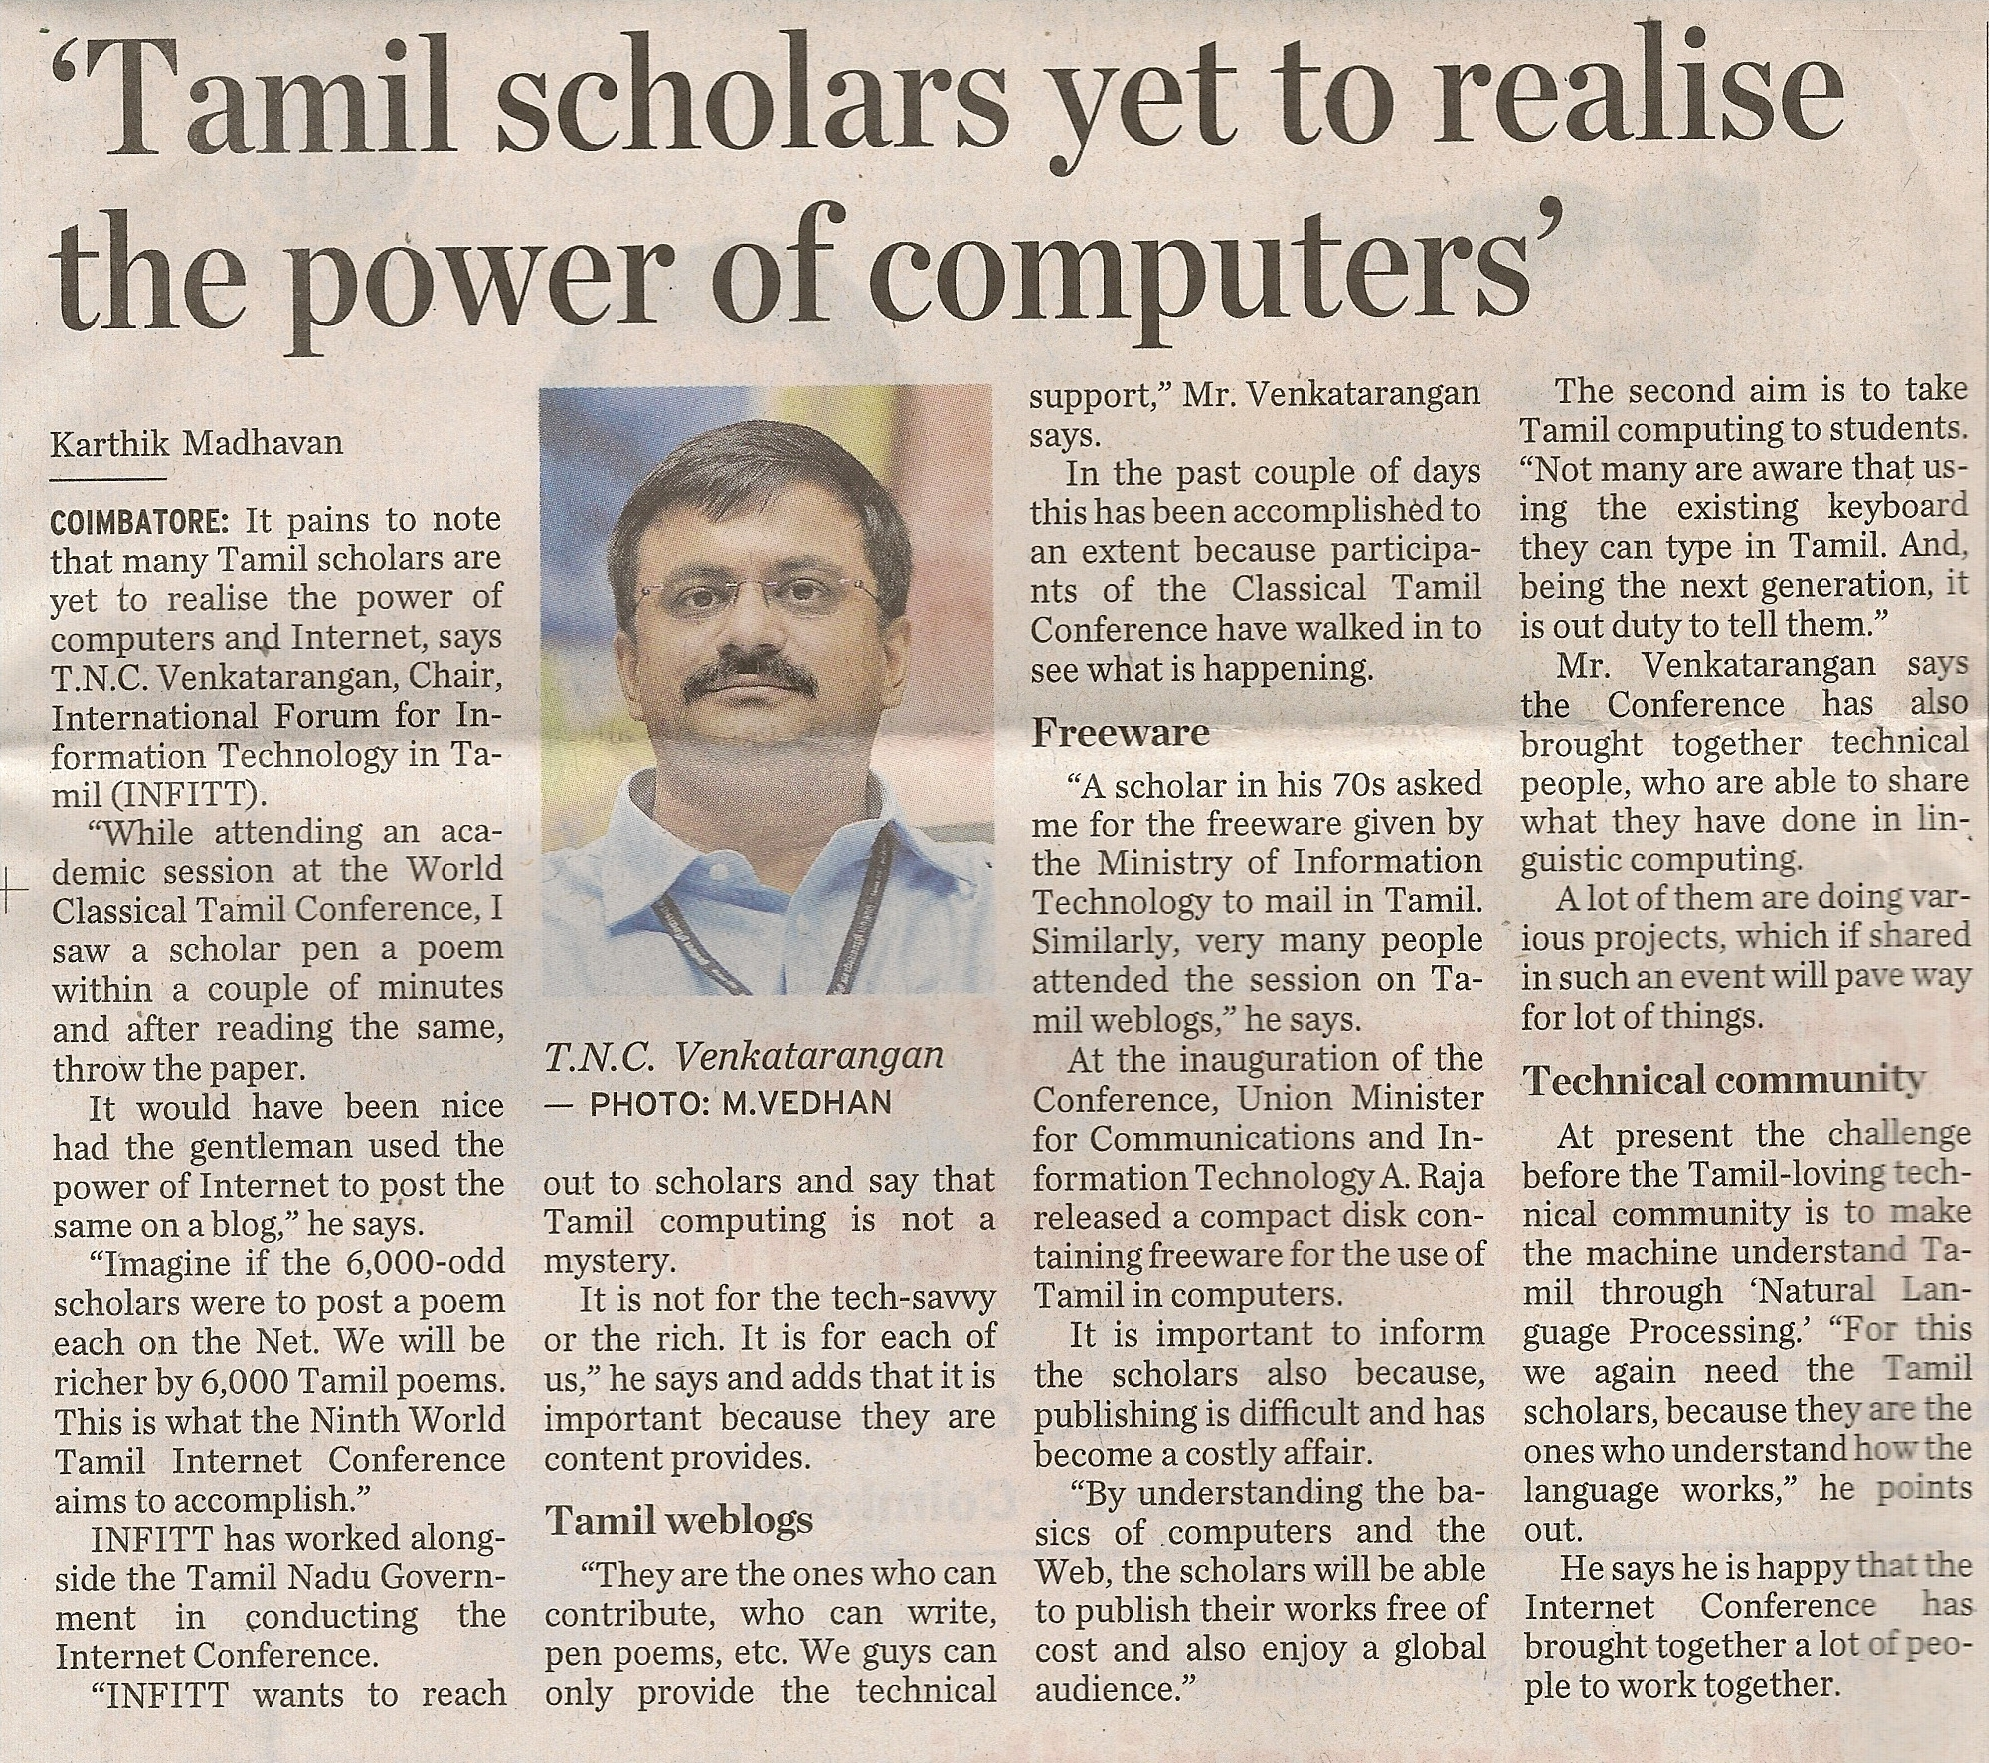 The Hindu – June 23, 2010